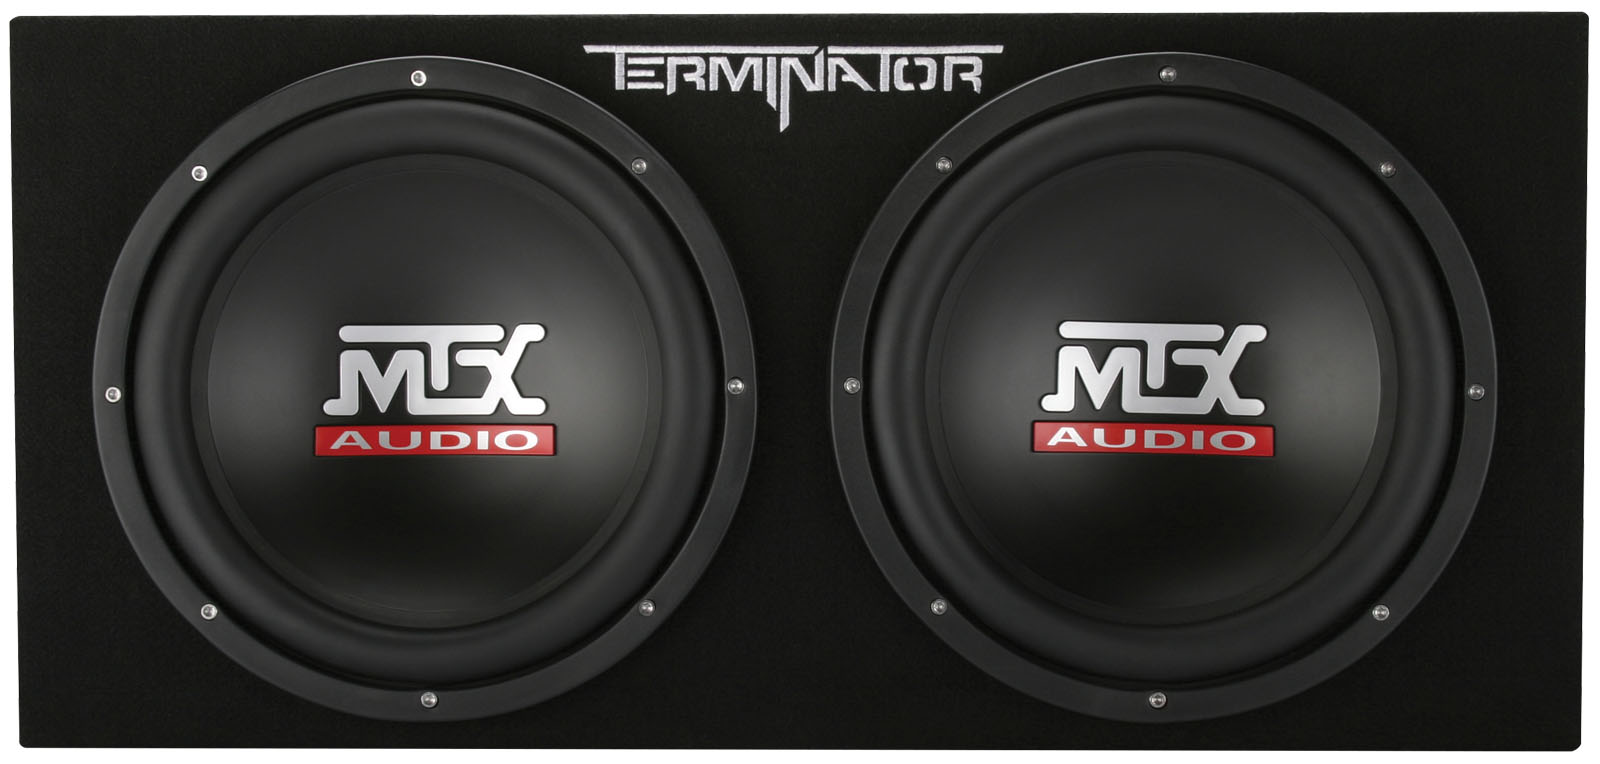 Mtx terminator series tne212d subwoofer detailed review publicscrutiny Images